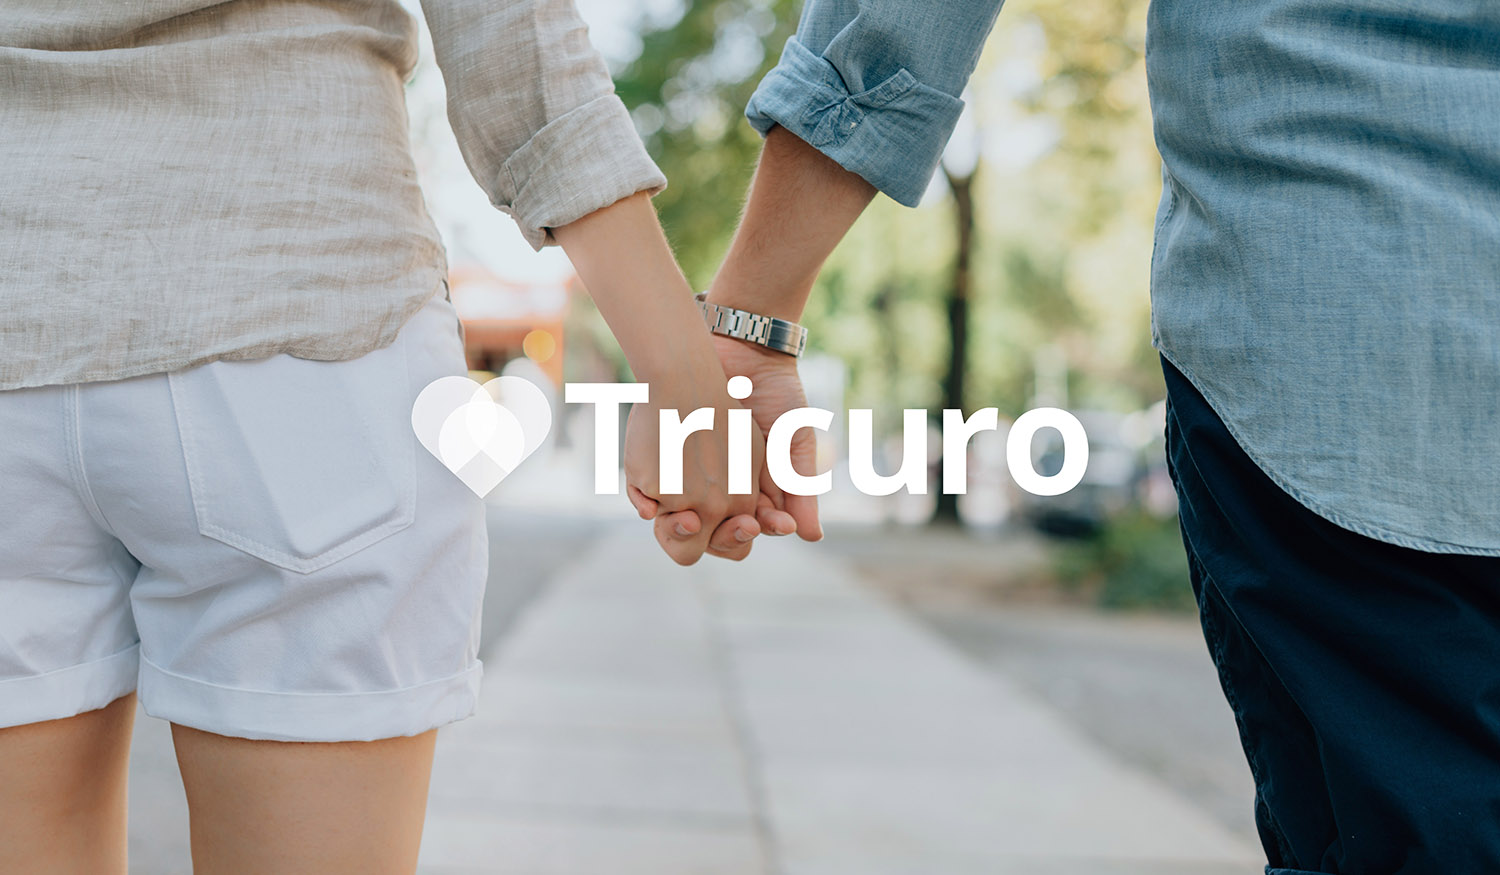 Web_Global_Group_Tricuro_Branding_Image